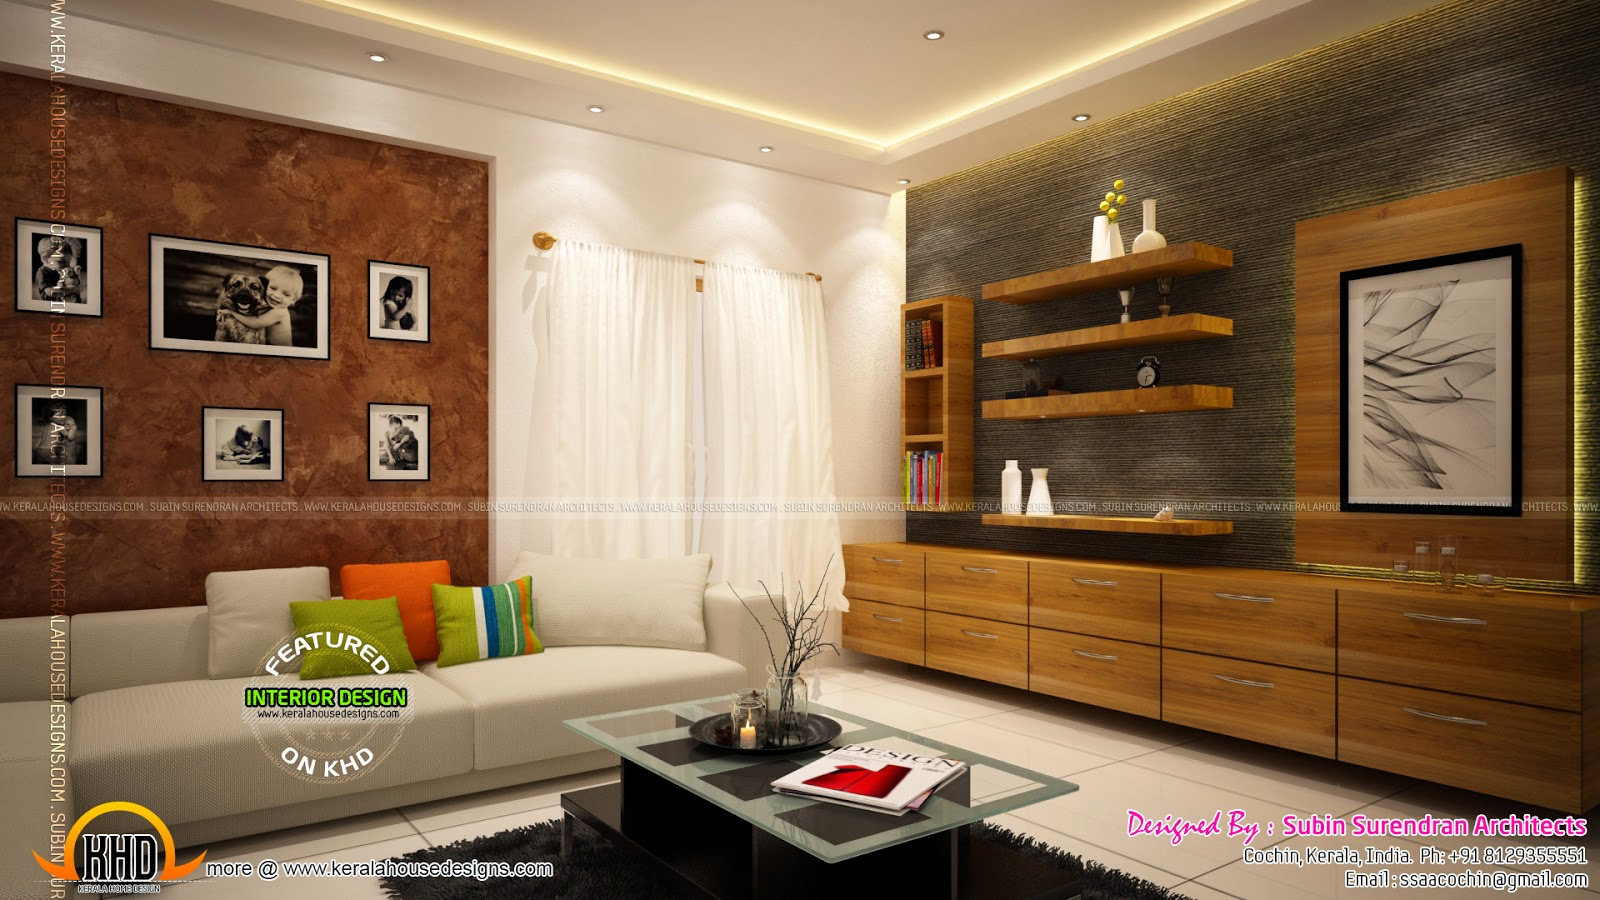 Kerala style low cost double storied home  keralahousedesigns